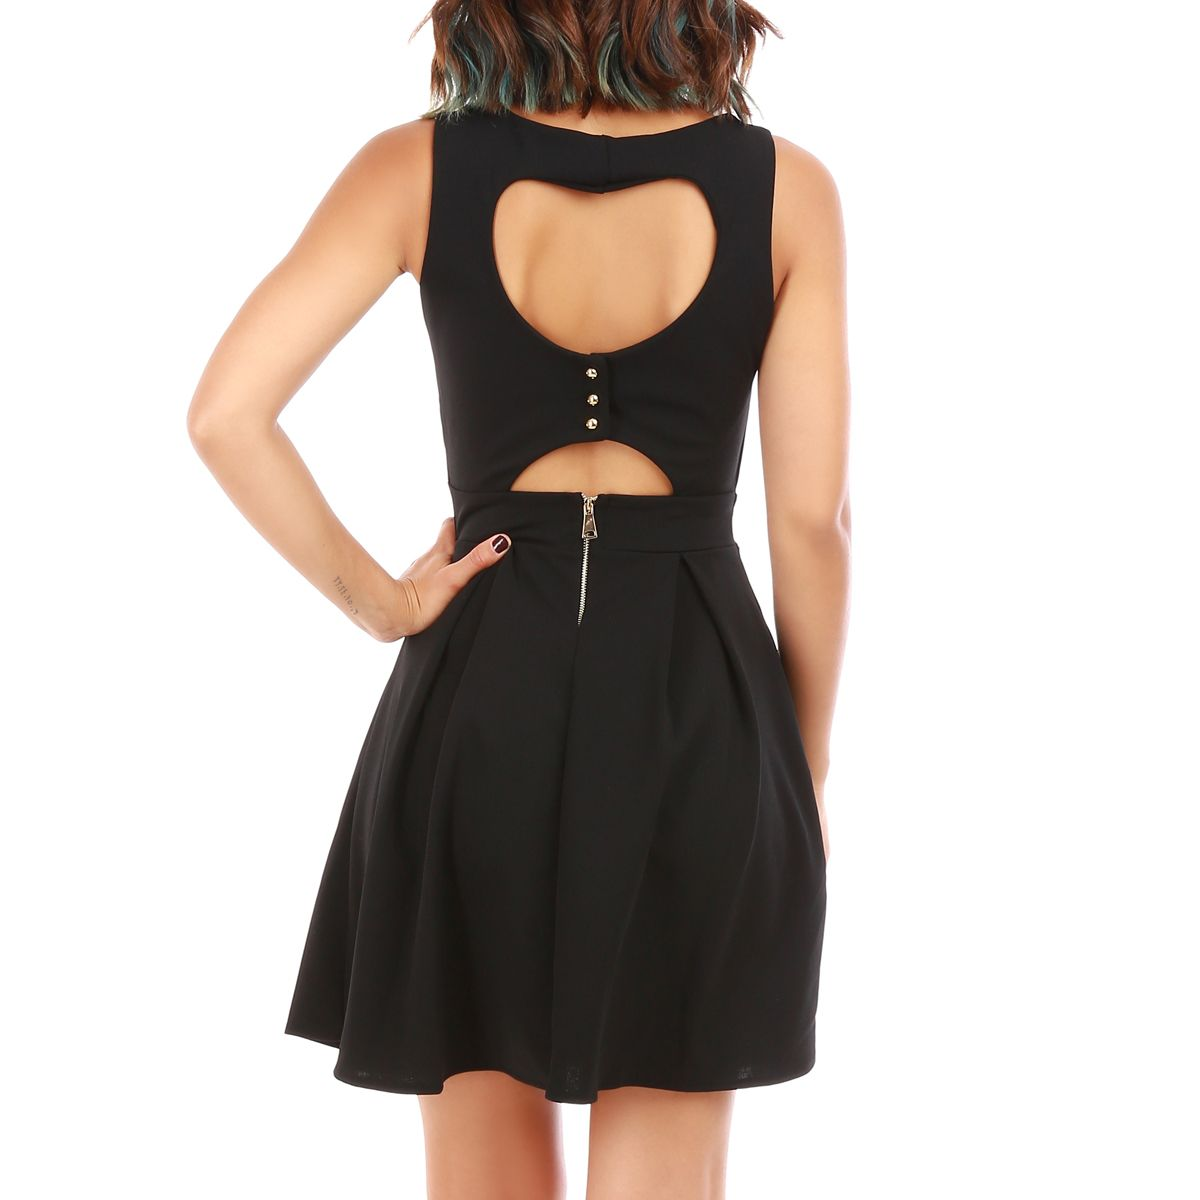 Robe coeur patineuse noire